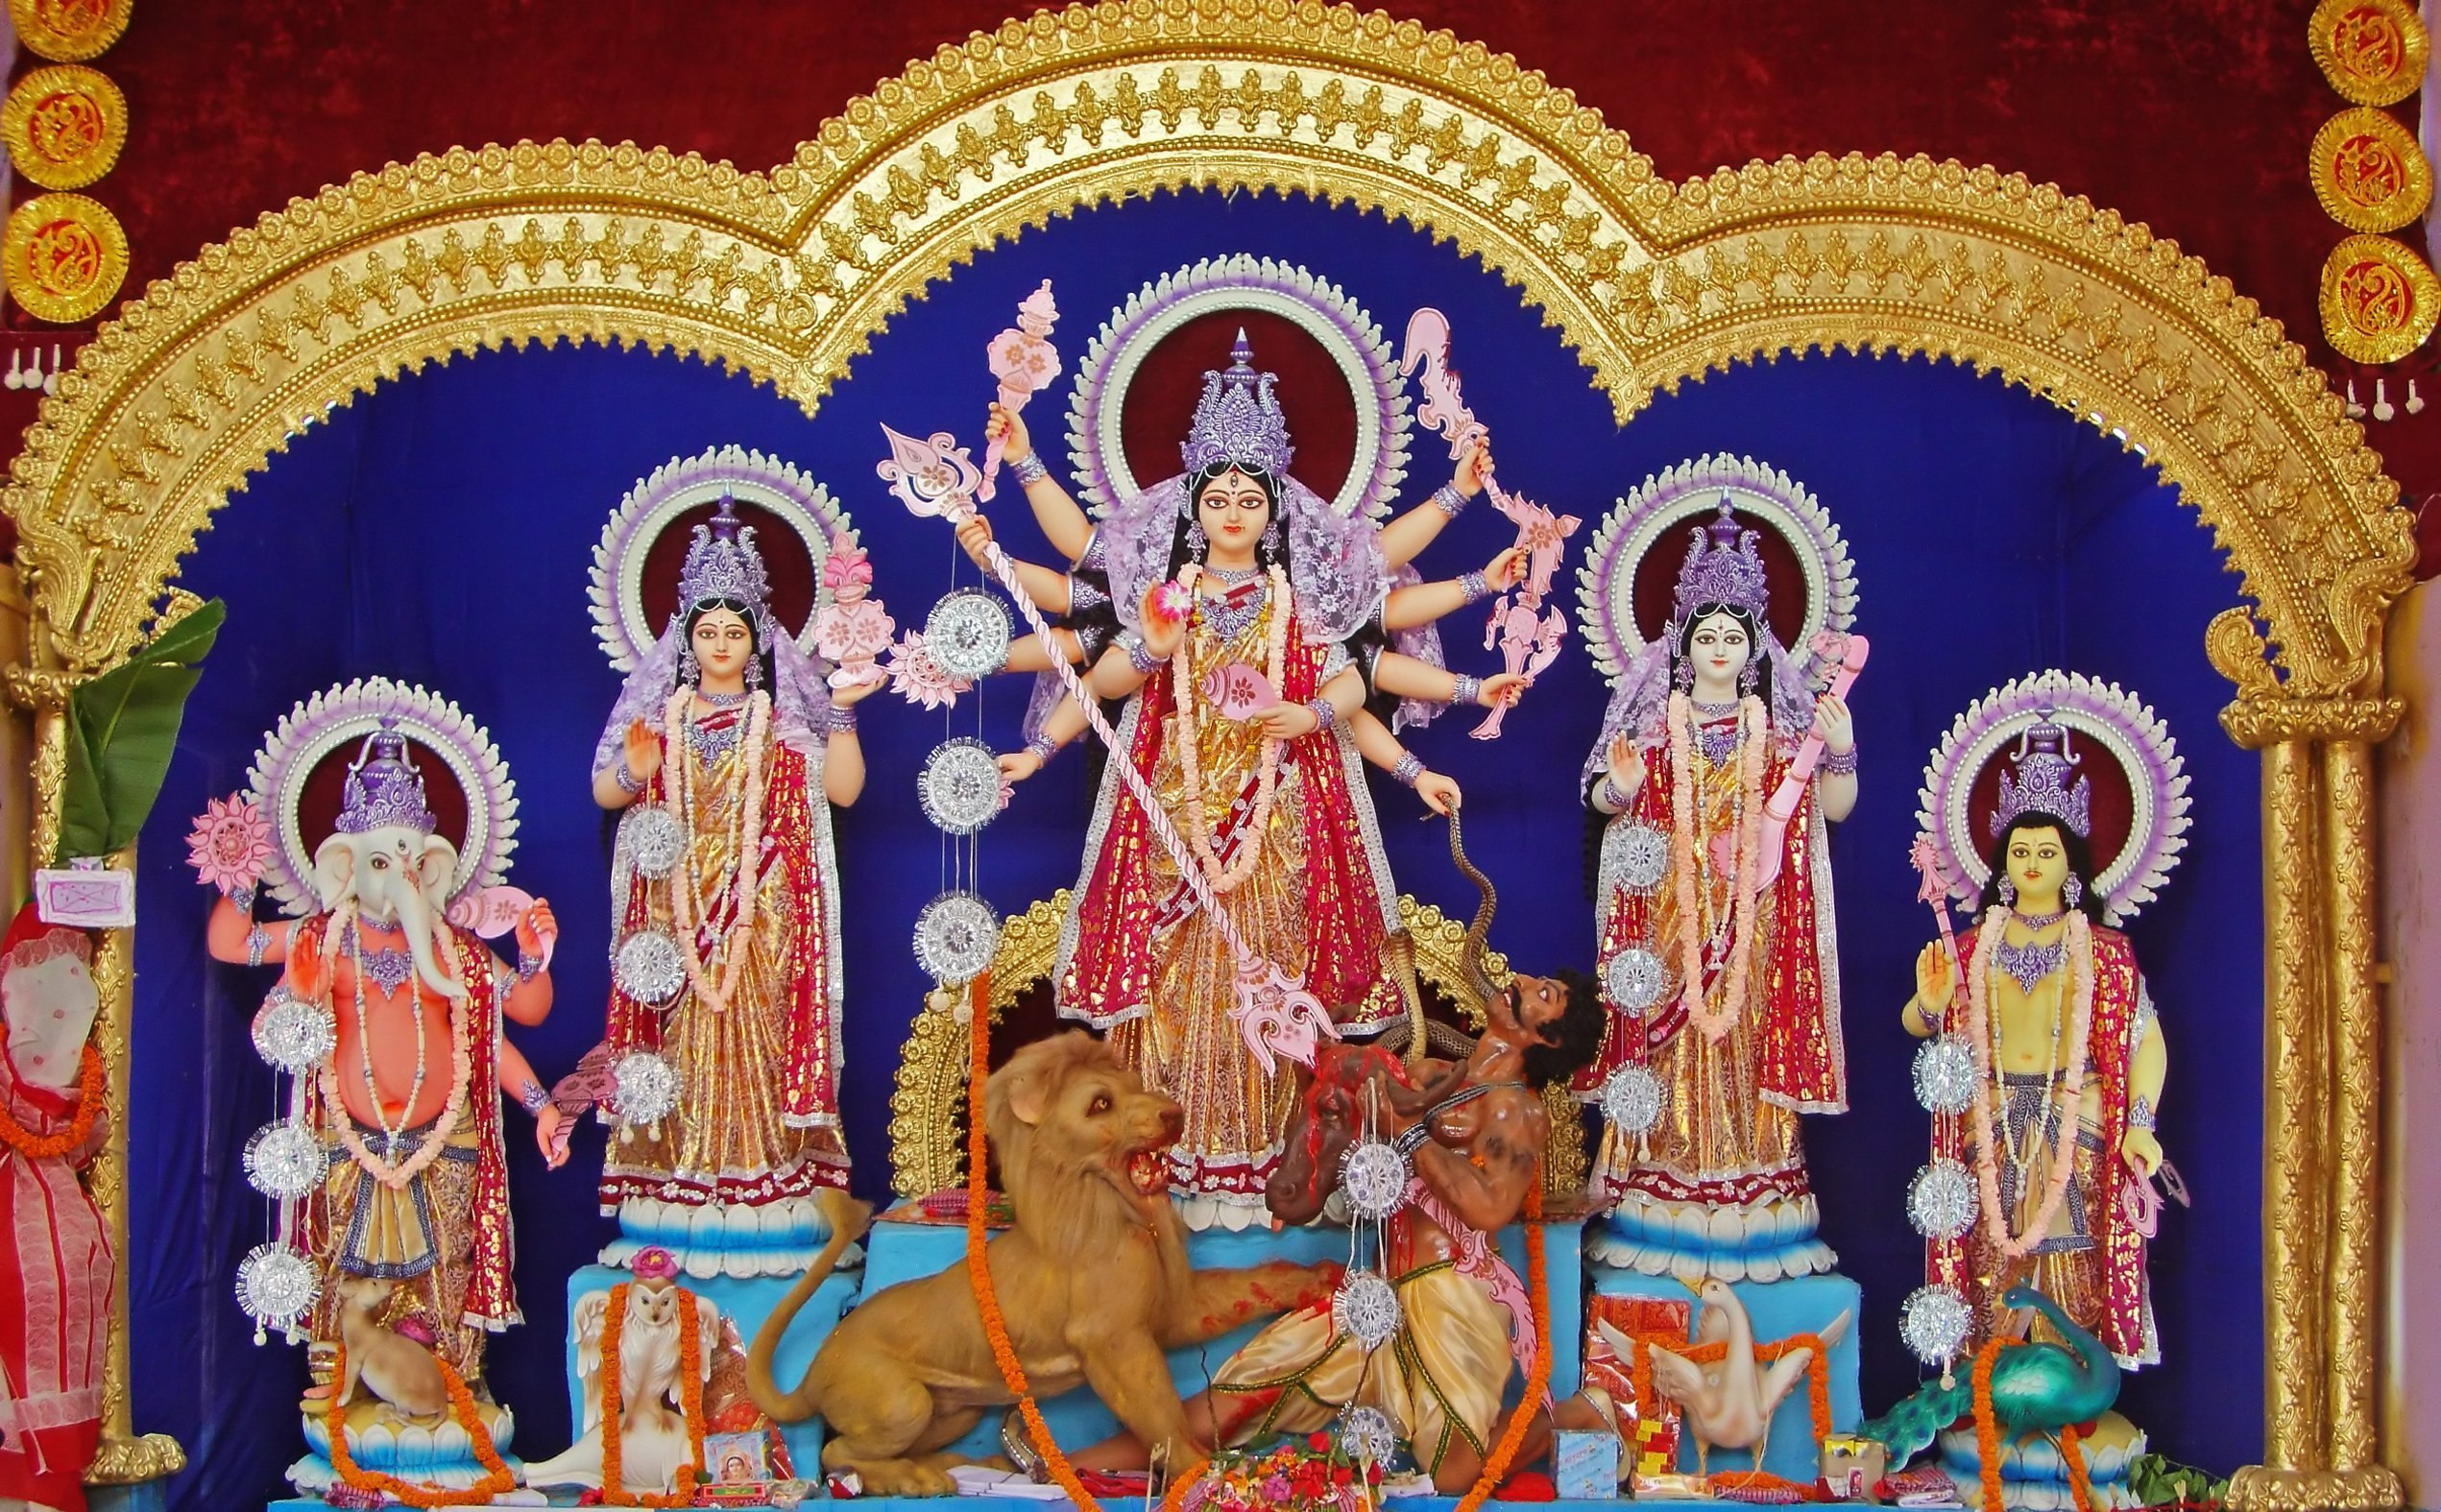 Durga Puja 2017 | Bonding time with family in festivals | Ways to spend time with your kids | Kidskintha